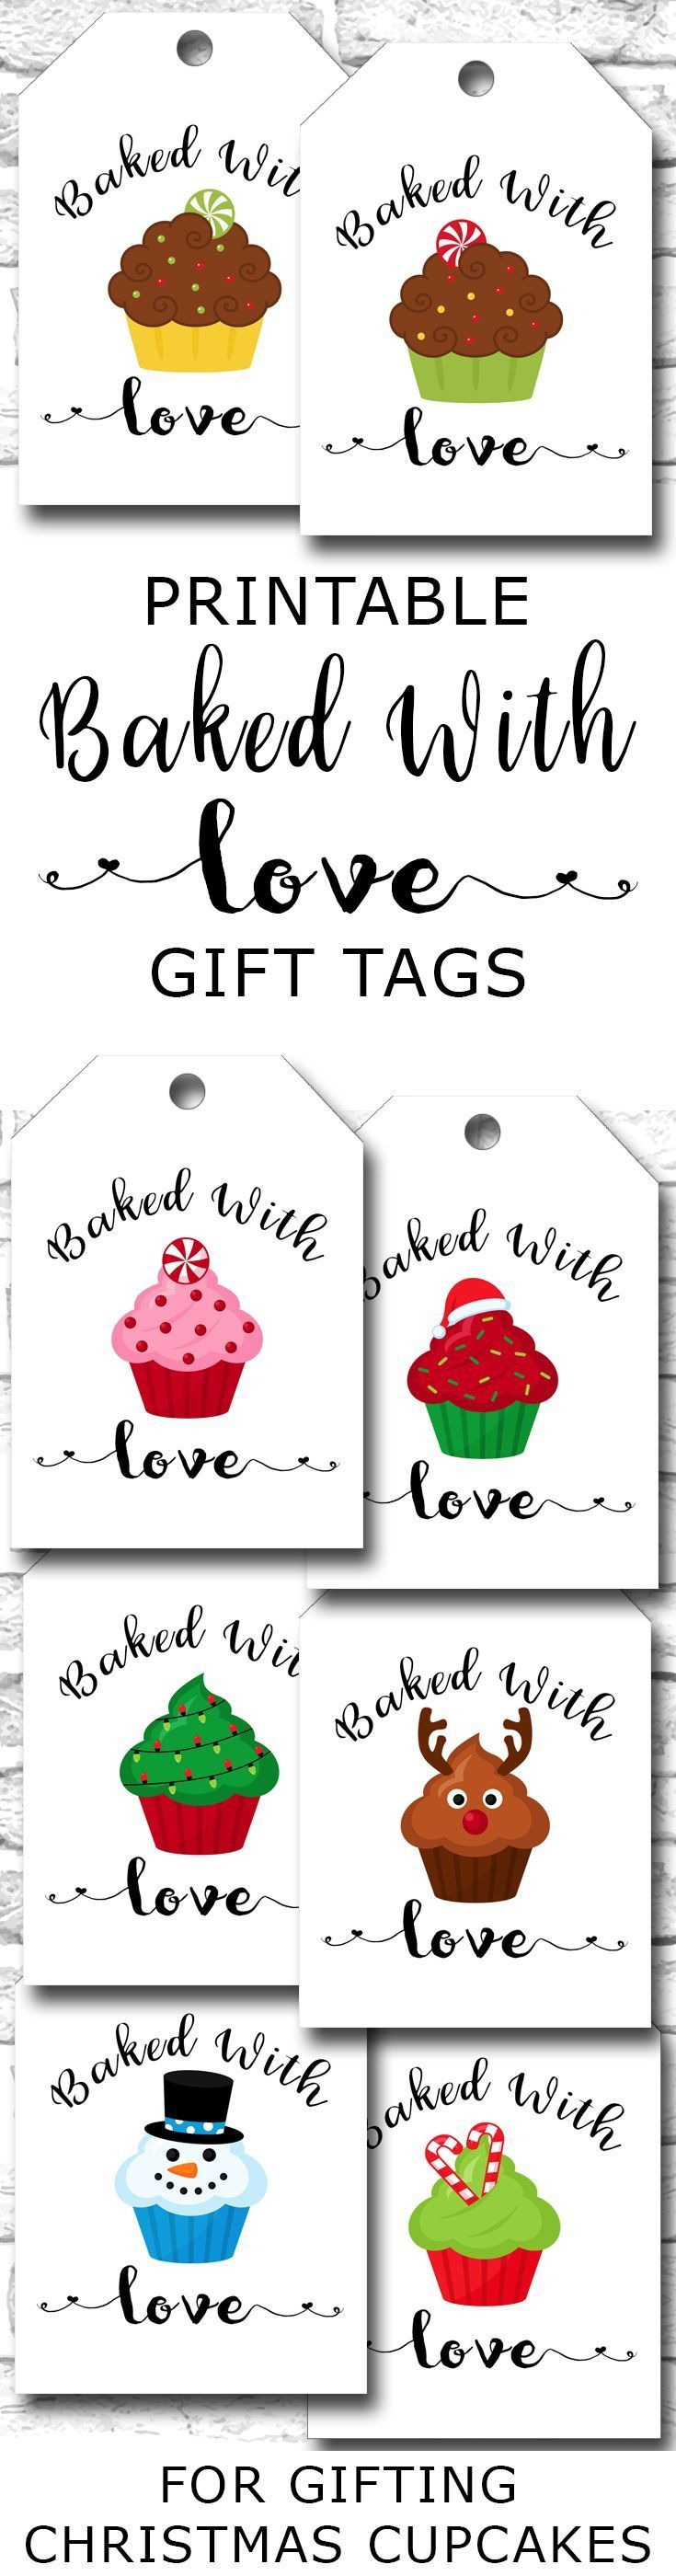 152 best printable gift tags cards images on pinterest gift tags